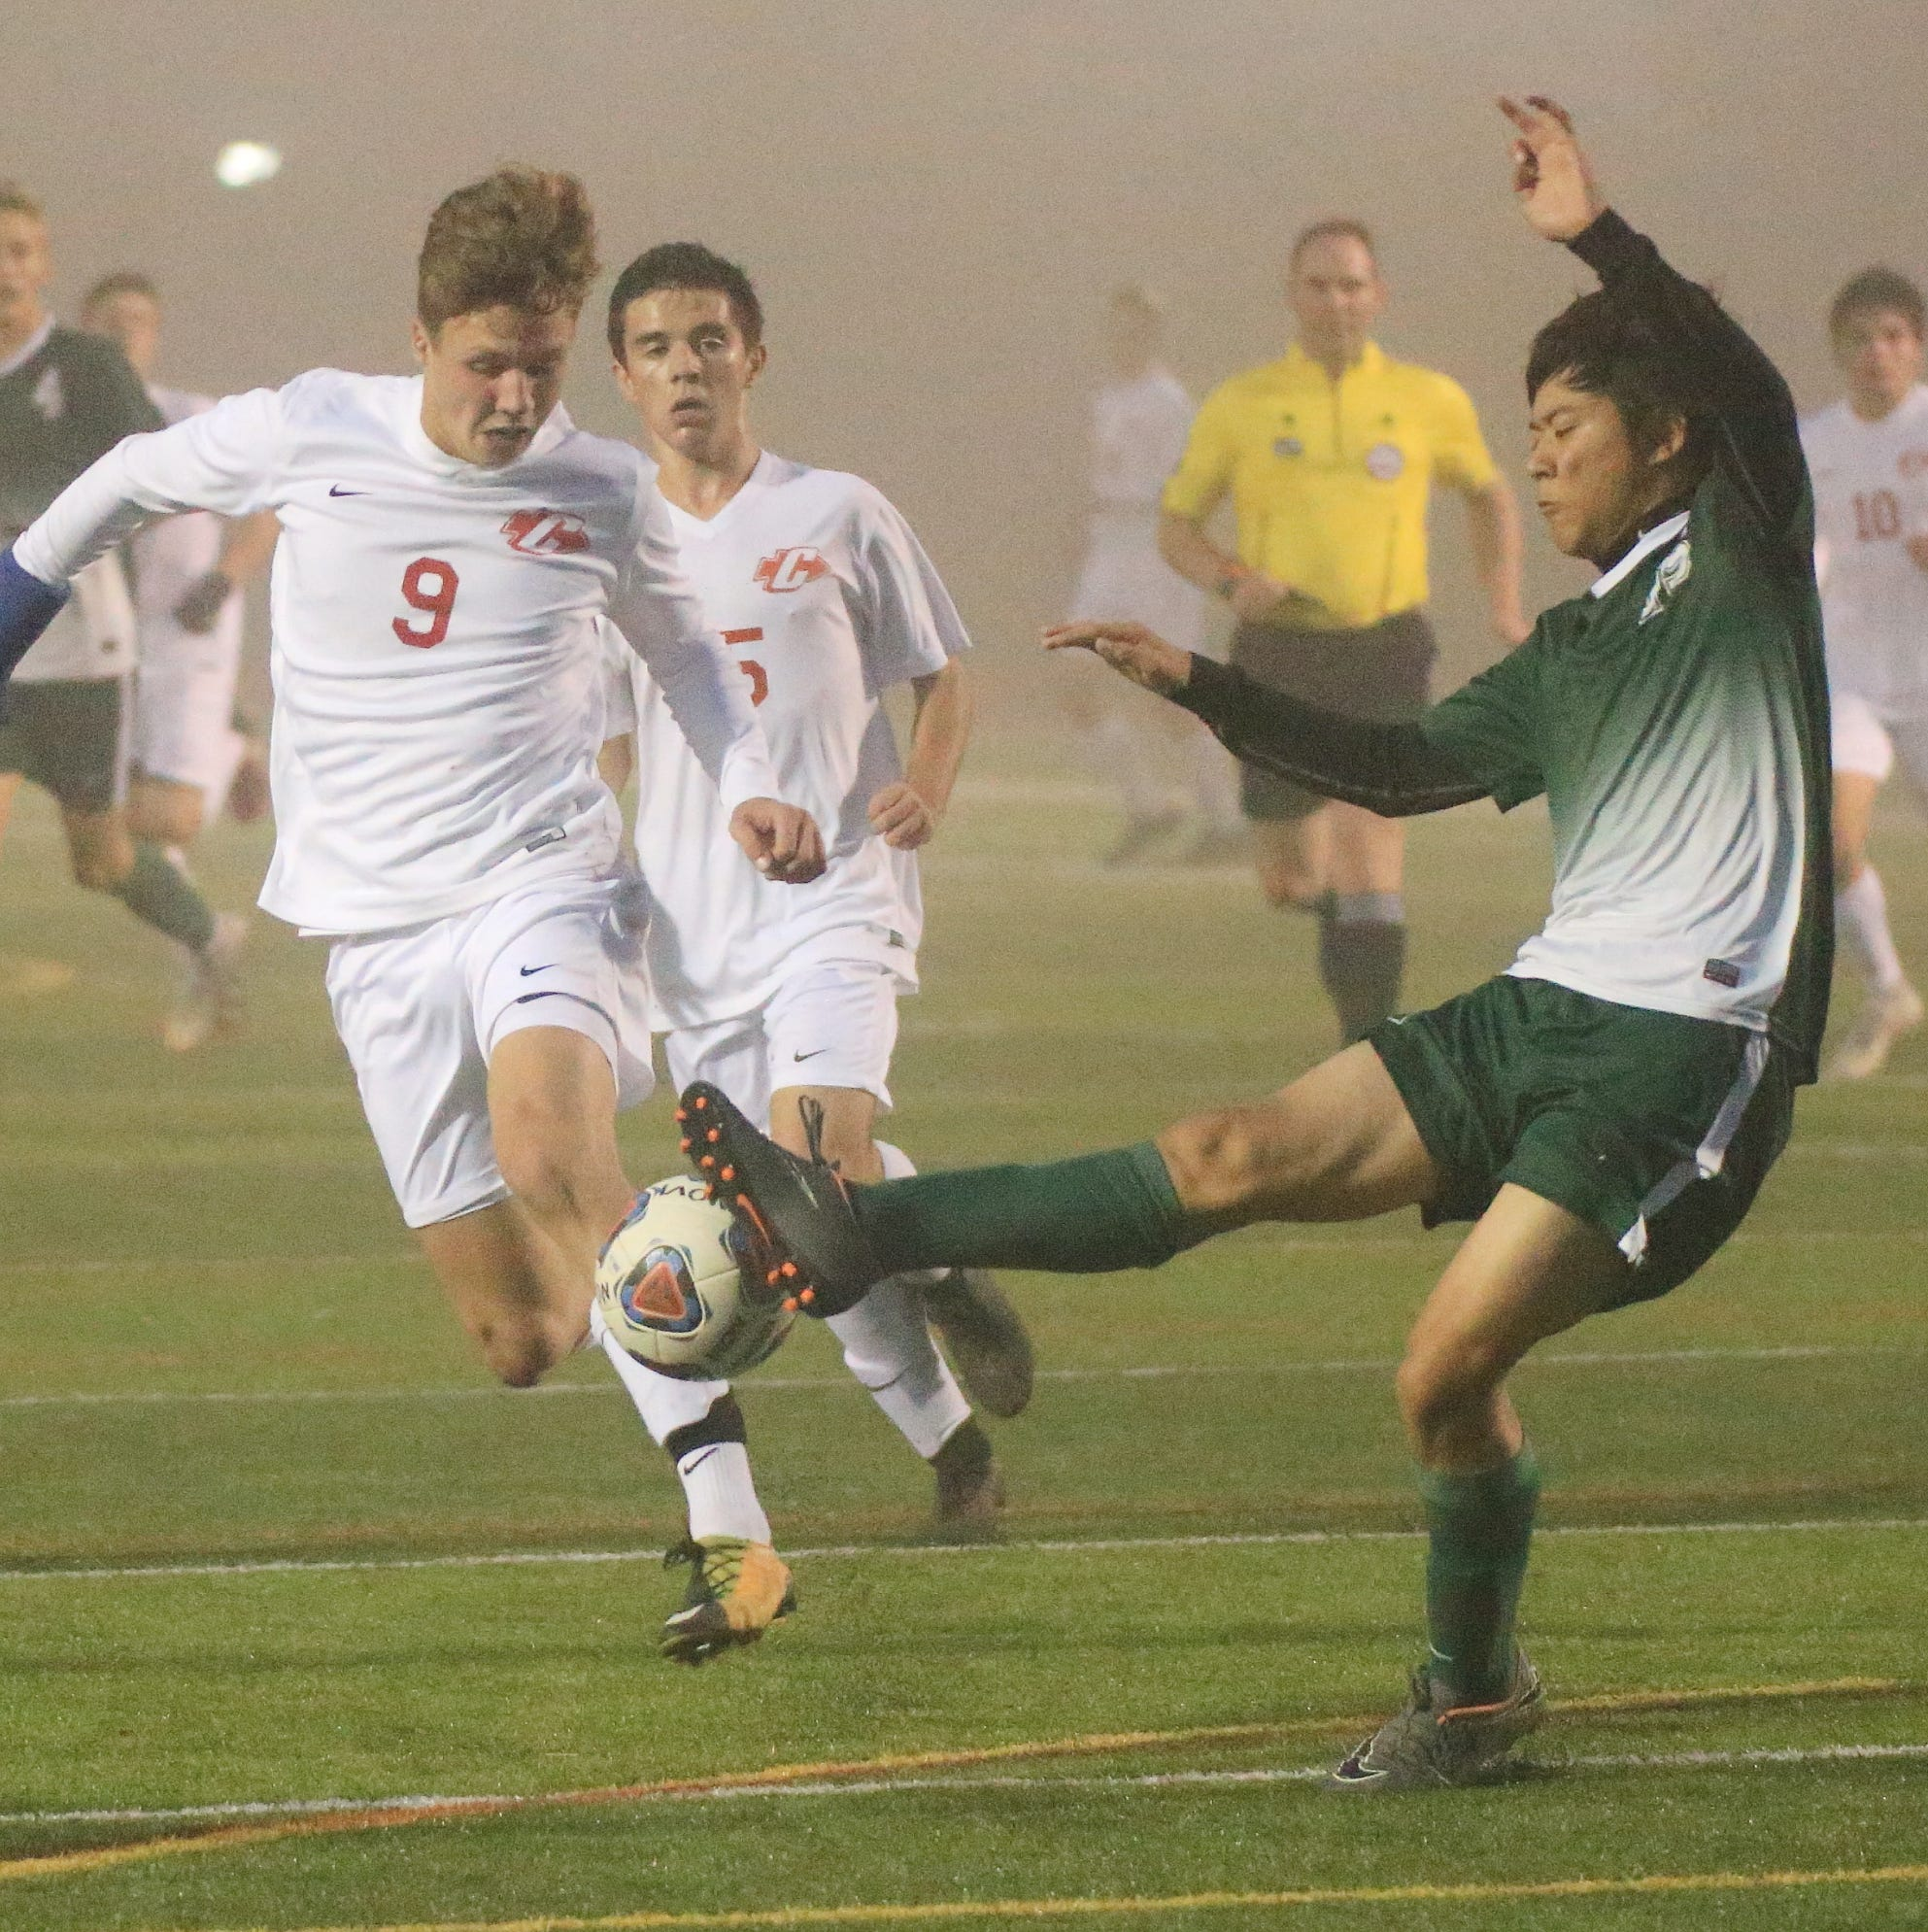 Late goal by Novi's Choi gives Wildcats 2-1 win over Canton